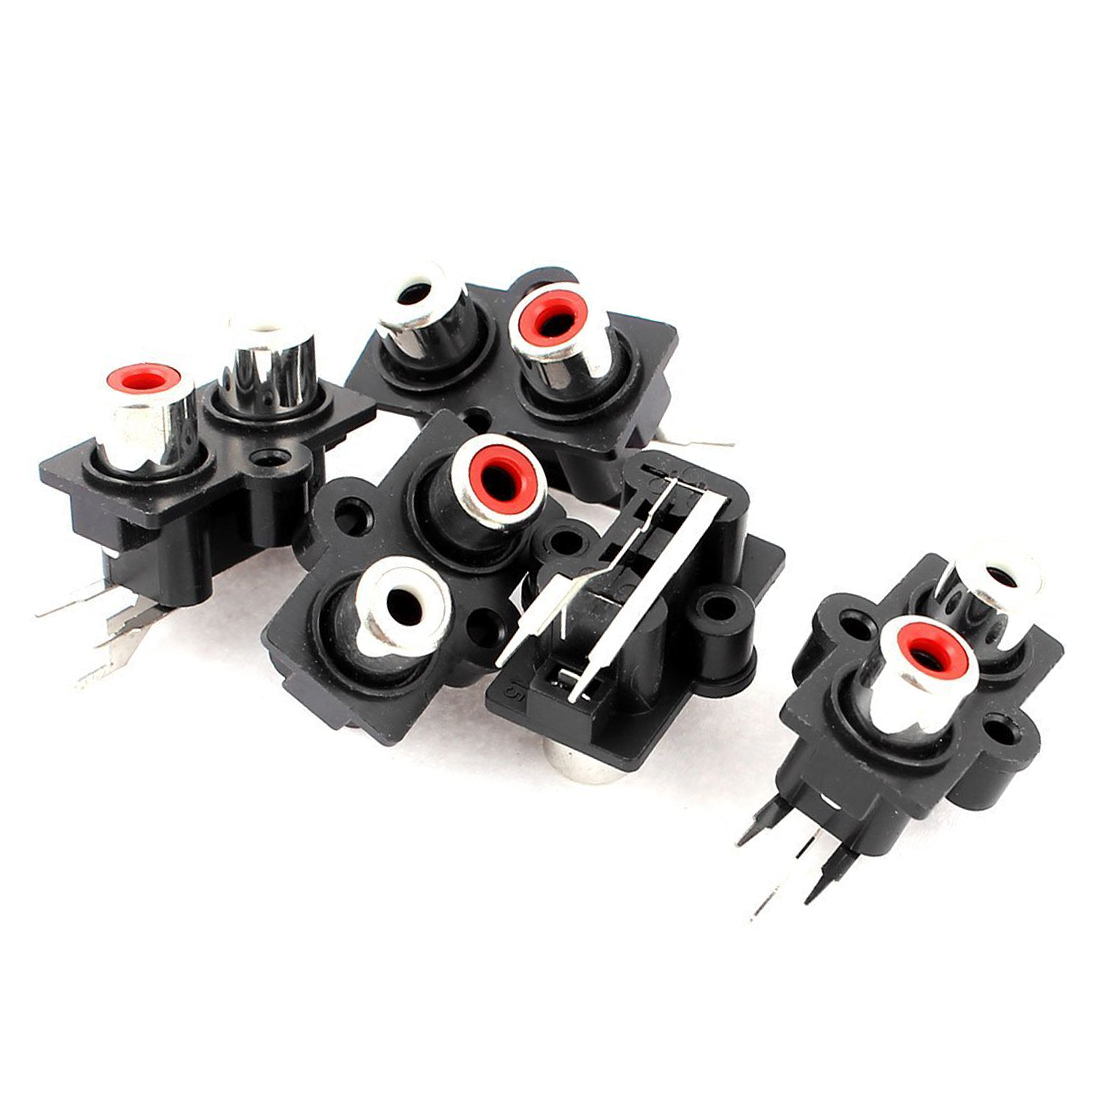 High Quality 5pcs PCB Mount 2 Position Stereo Audio Video Jack RCA Female Connector 5pcs silver plated rca female jack terminal amplifier audio connector red